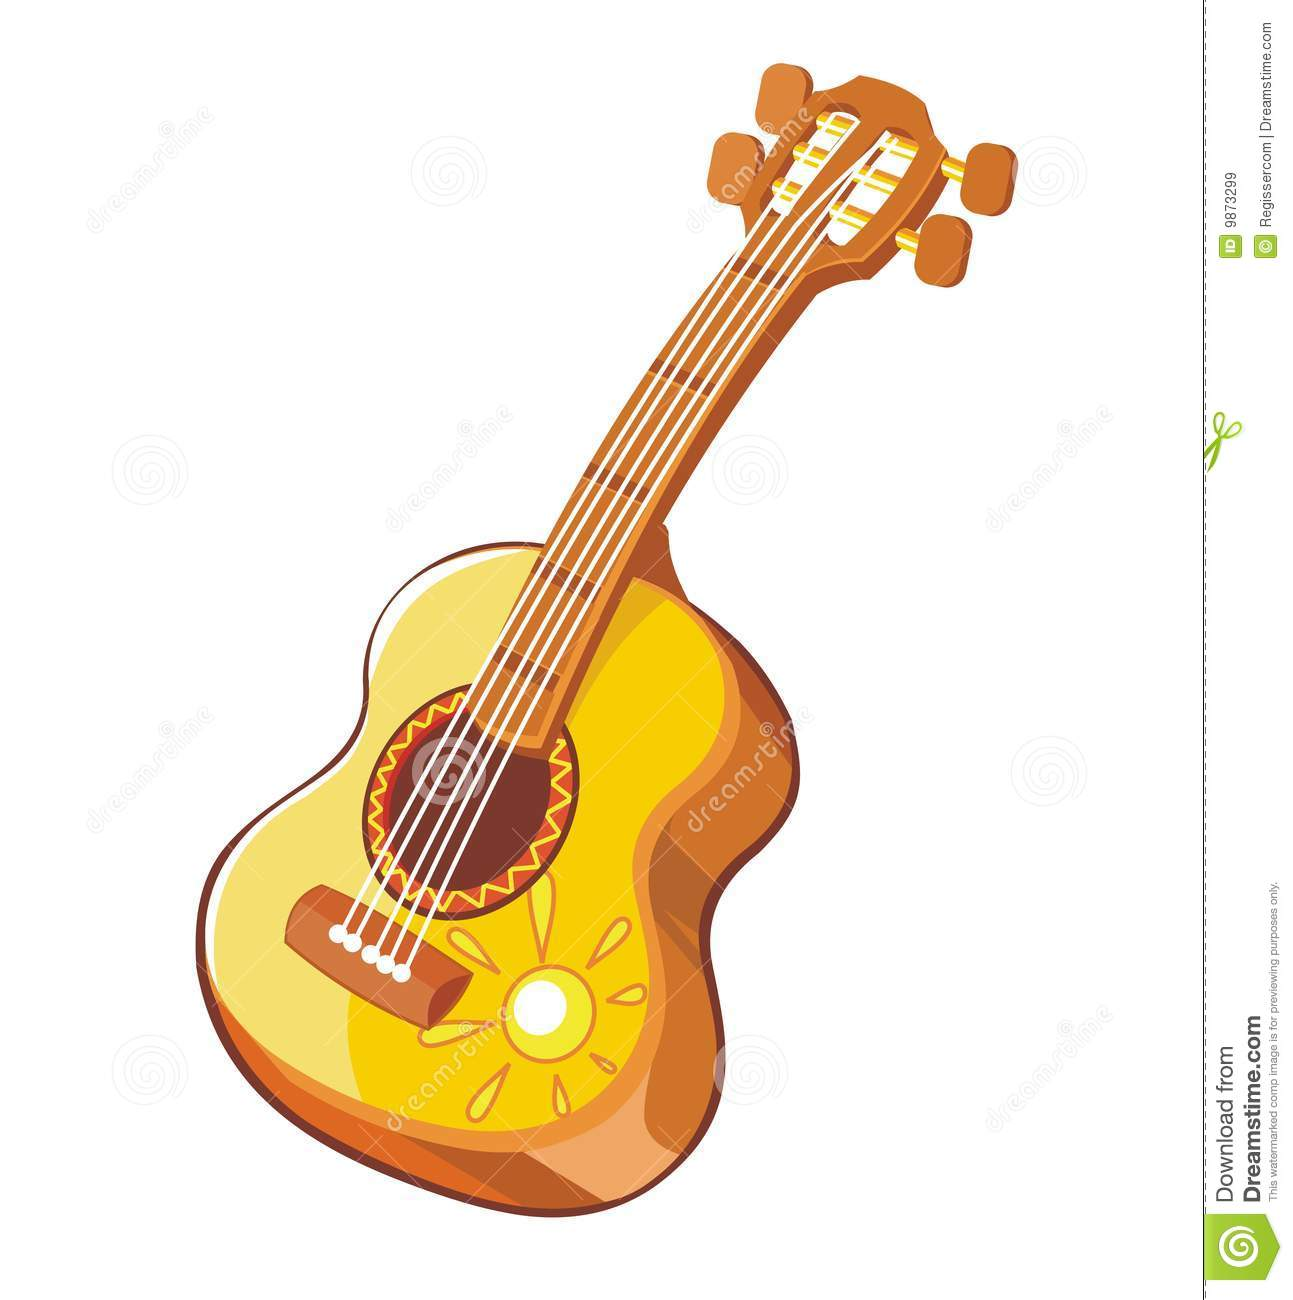 acoustic guitar clip art clipart panda free clipart images. Black Bedroom Furniture Sets. Home Design Ideas